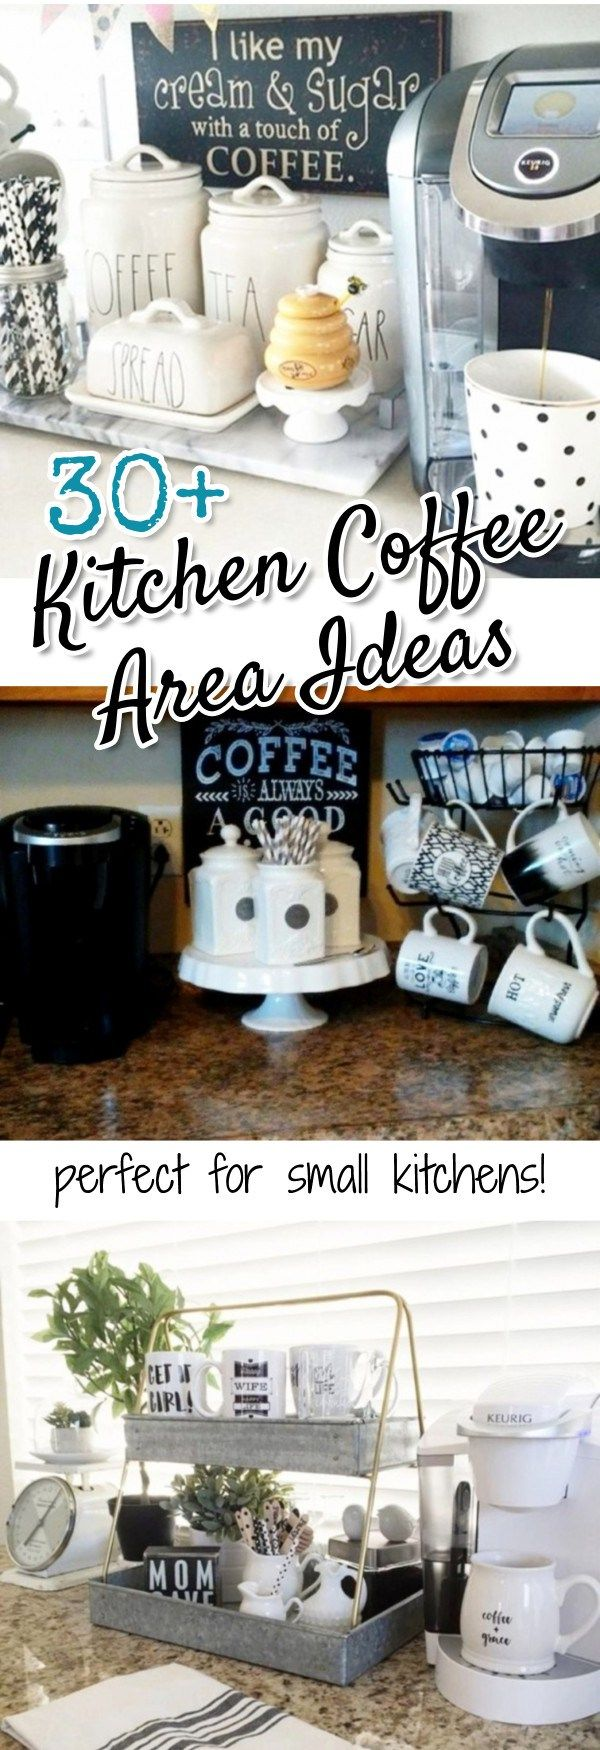 Gorgeous Kitchen Coffee Area Ideas we LOVE! Perfect ideas for small kitchens, apartment kitchens, condo or lakehouse kitchens - and even as a dorm room coffee bar set up